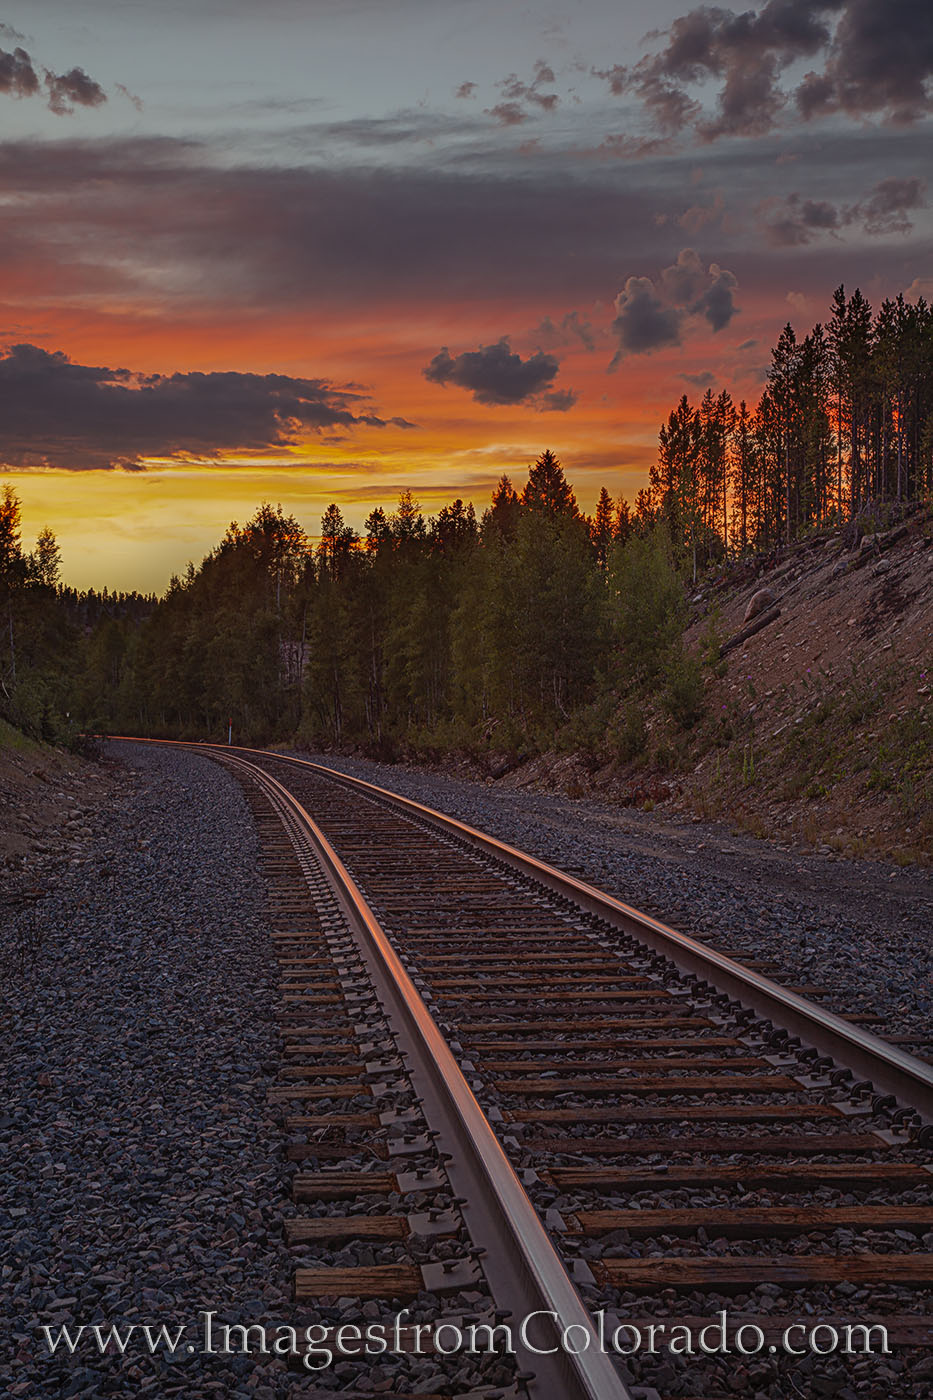 winter park, traintracks, sunset, grand county, tracks, orange, hideaway park, mountains, rockies, photo